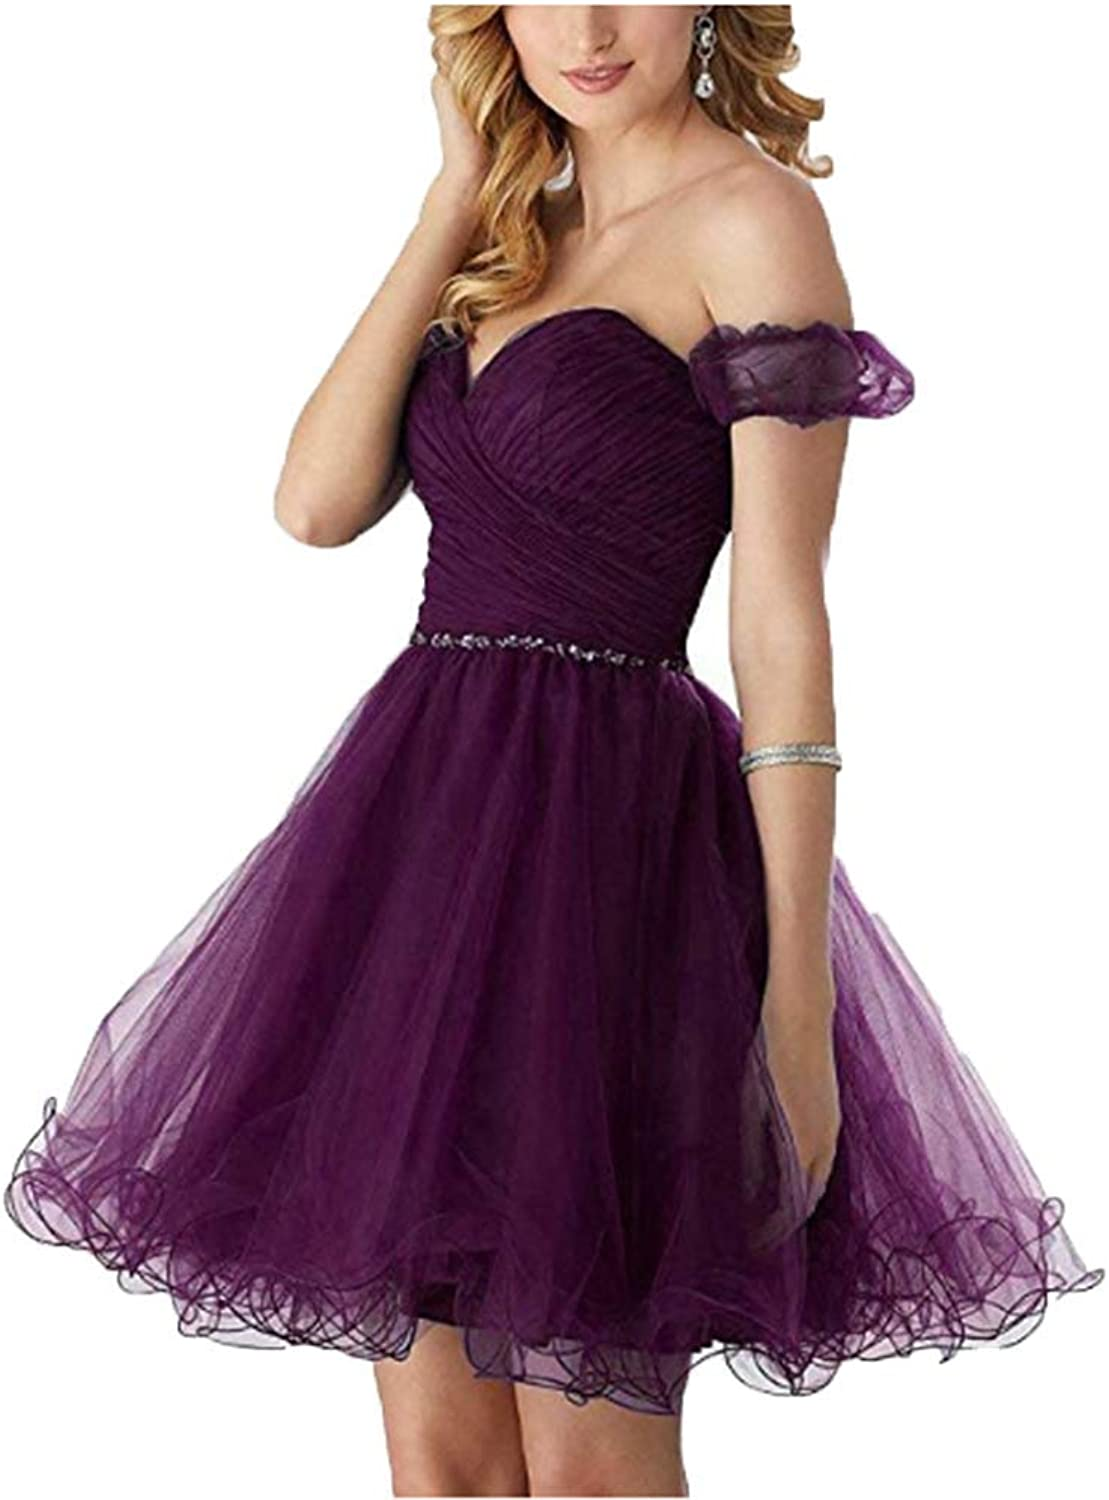 FWVR Women's Off Shoulder Short Bridesmaid Dresses Tulle Prom Homecoming Dresses Ball Gown